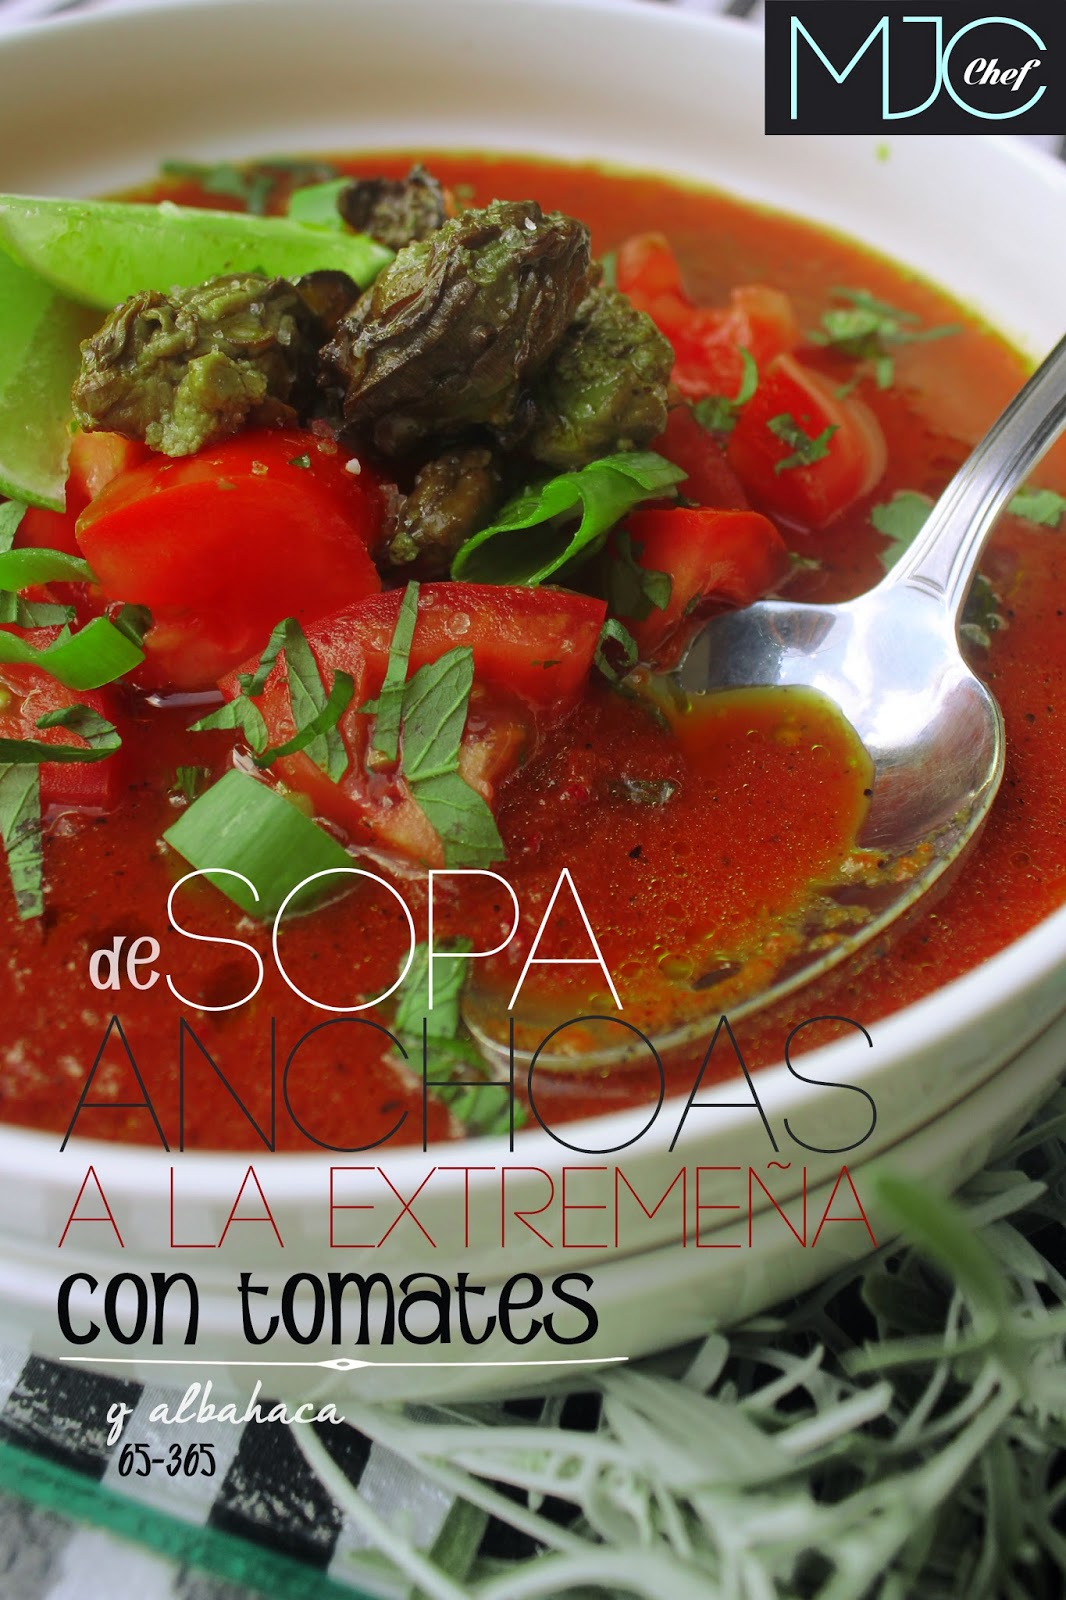 Sopa de anchoas